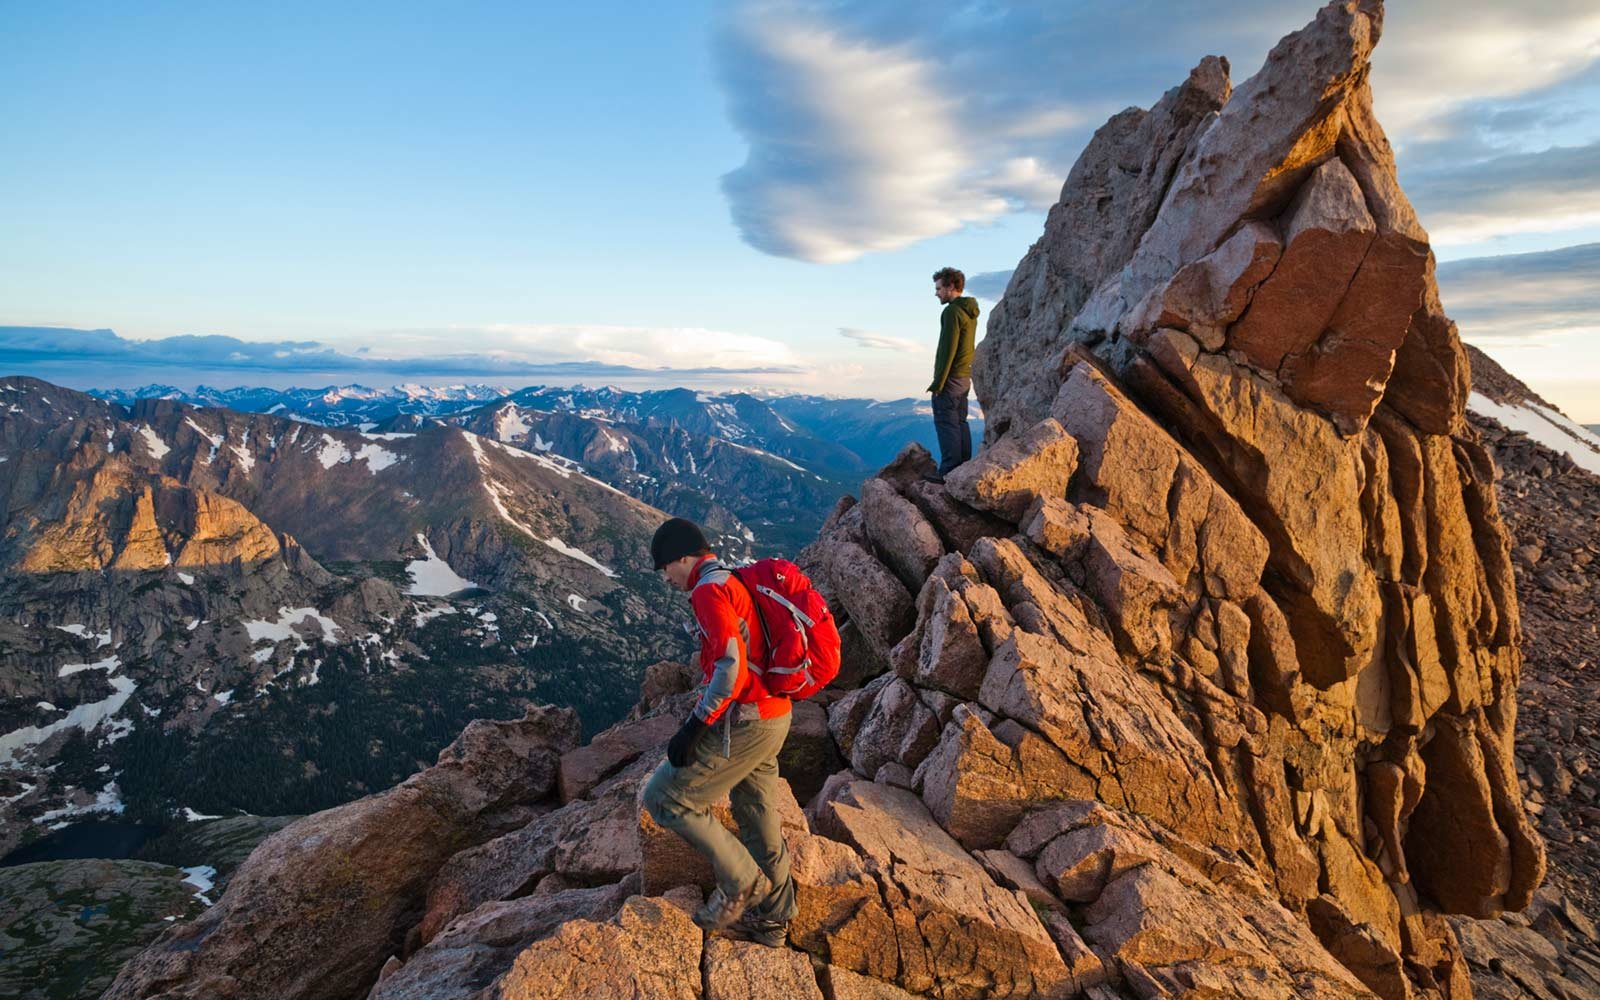 3. Rocky Mountain National Park